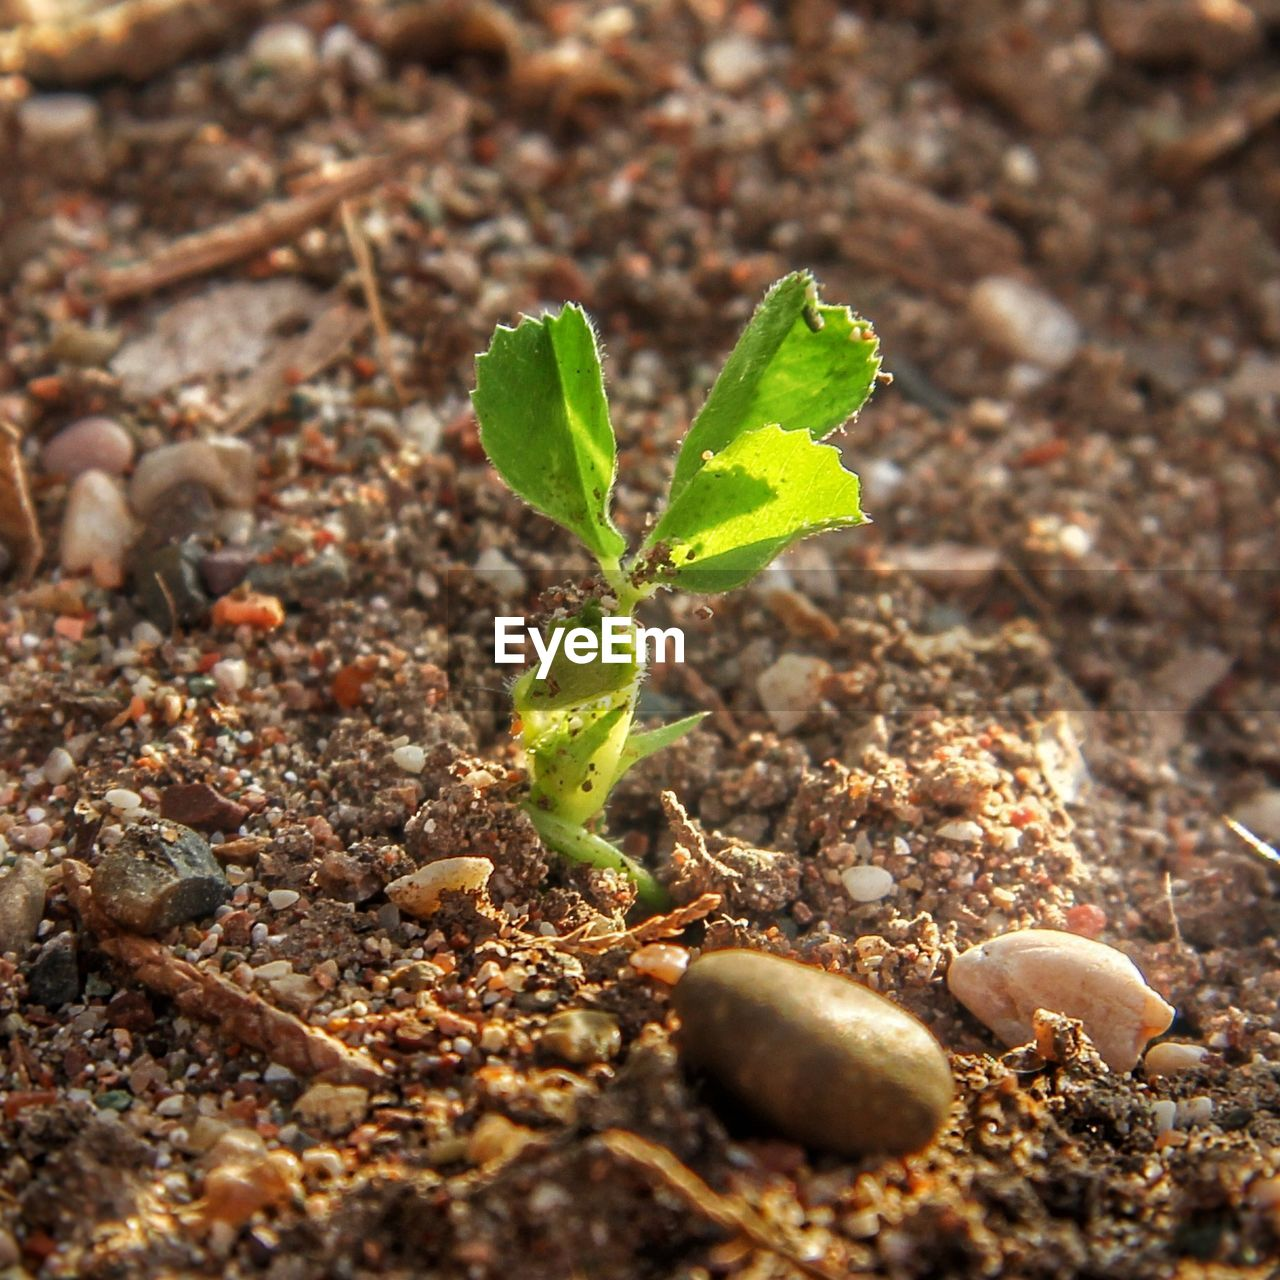 growth, beginnings, plant, nature, new life, green color, leaf, close-up, sapling, no people, fragility, day, outdoors, freshness